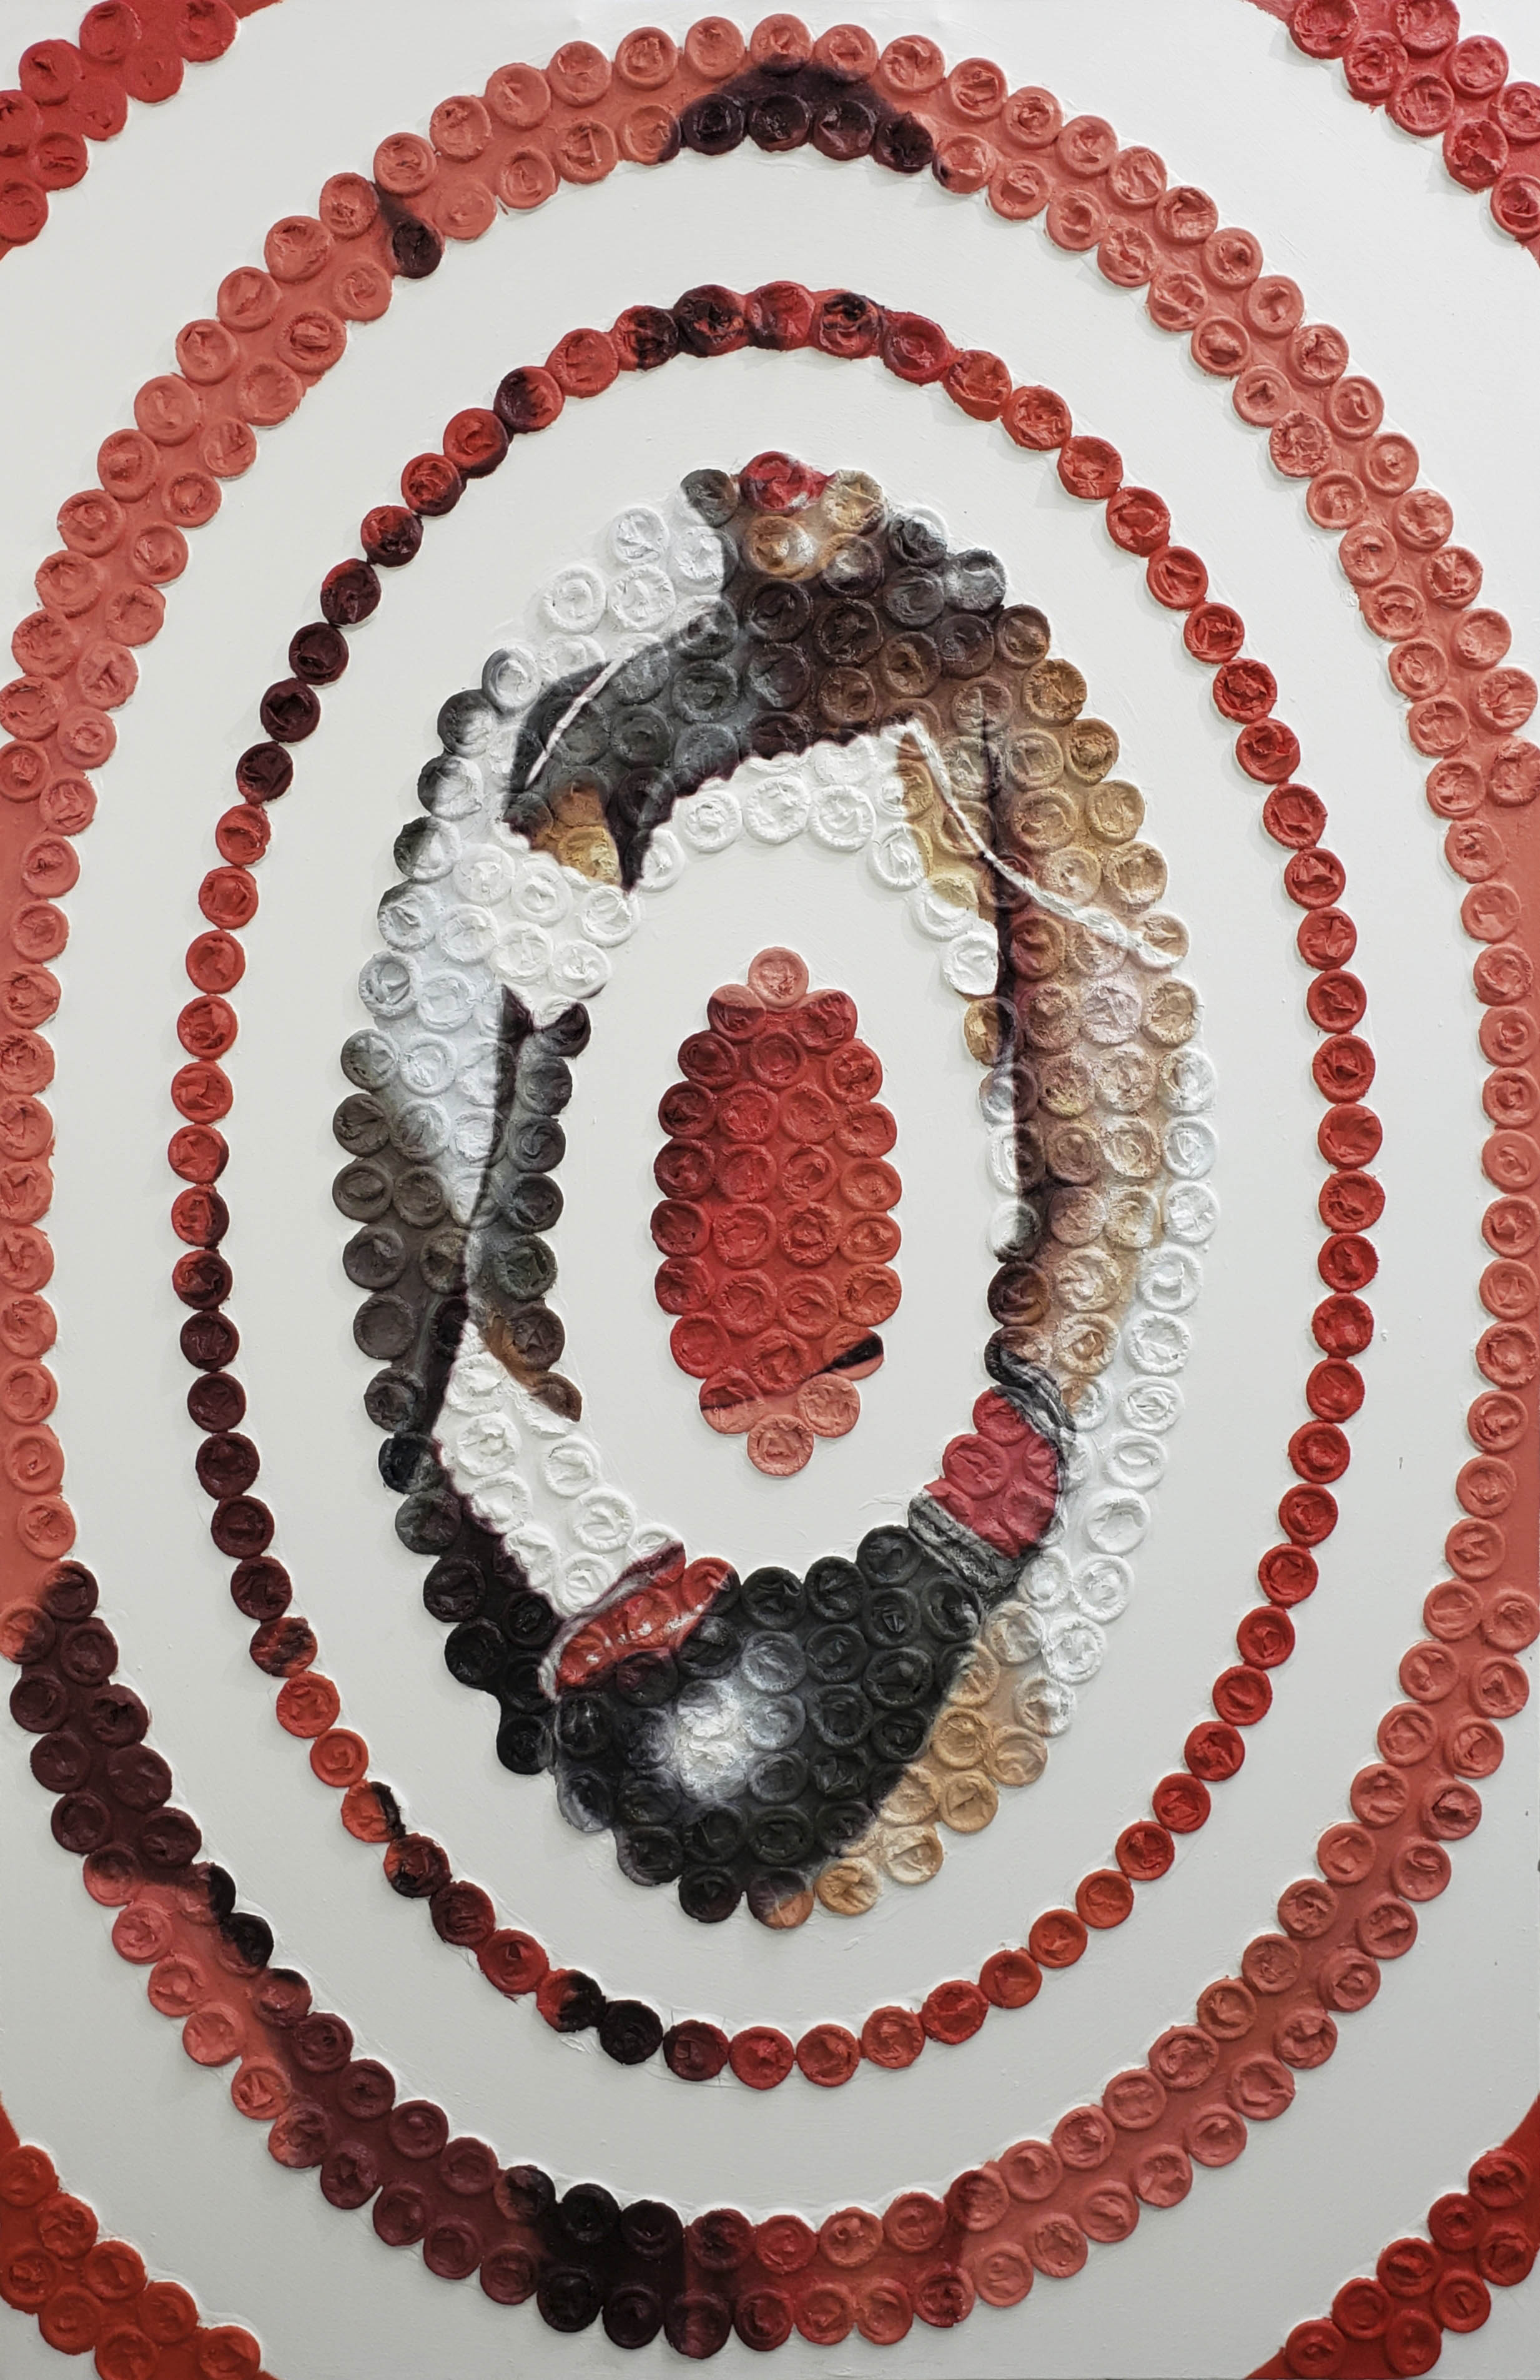 Image of mixed media painting using condoms and oil on canvas to highlight victims of sex trafficking